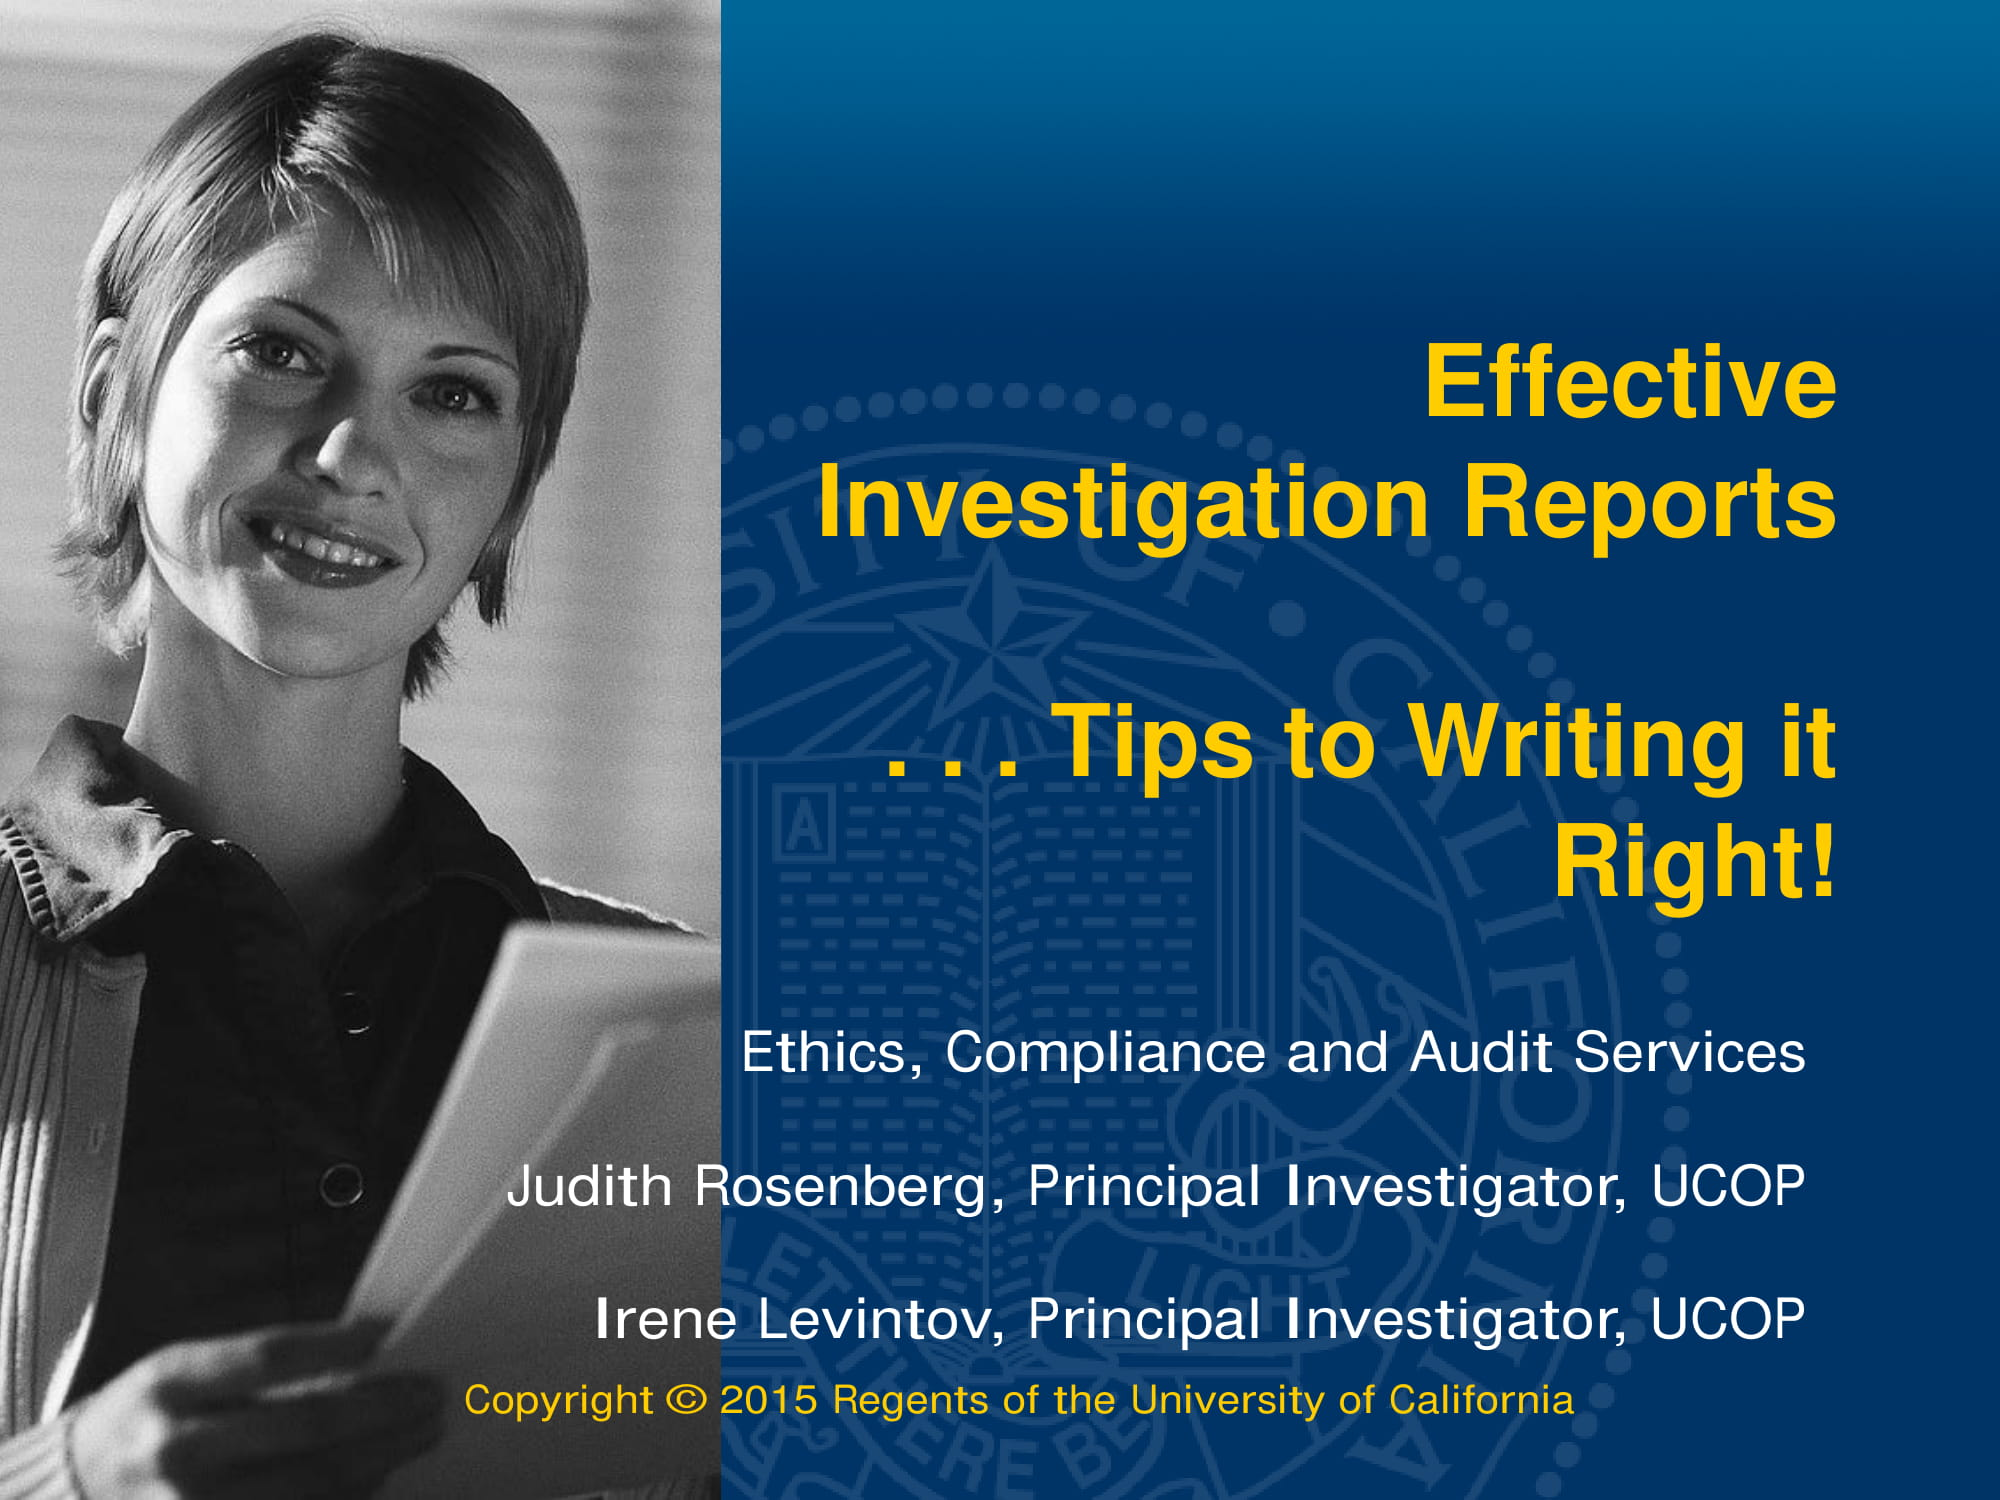 effective investigation report for the workplace writing tips example 01